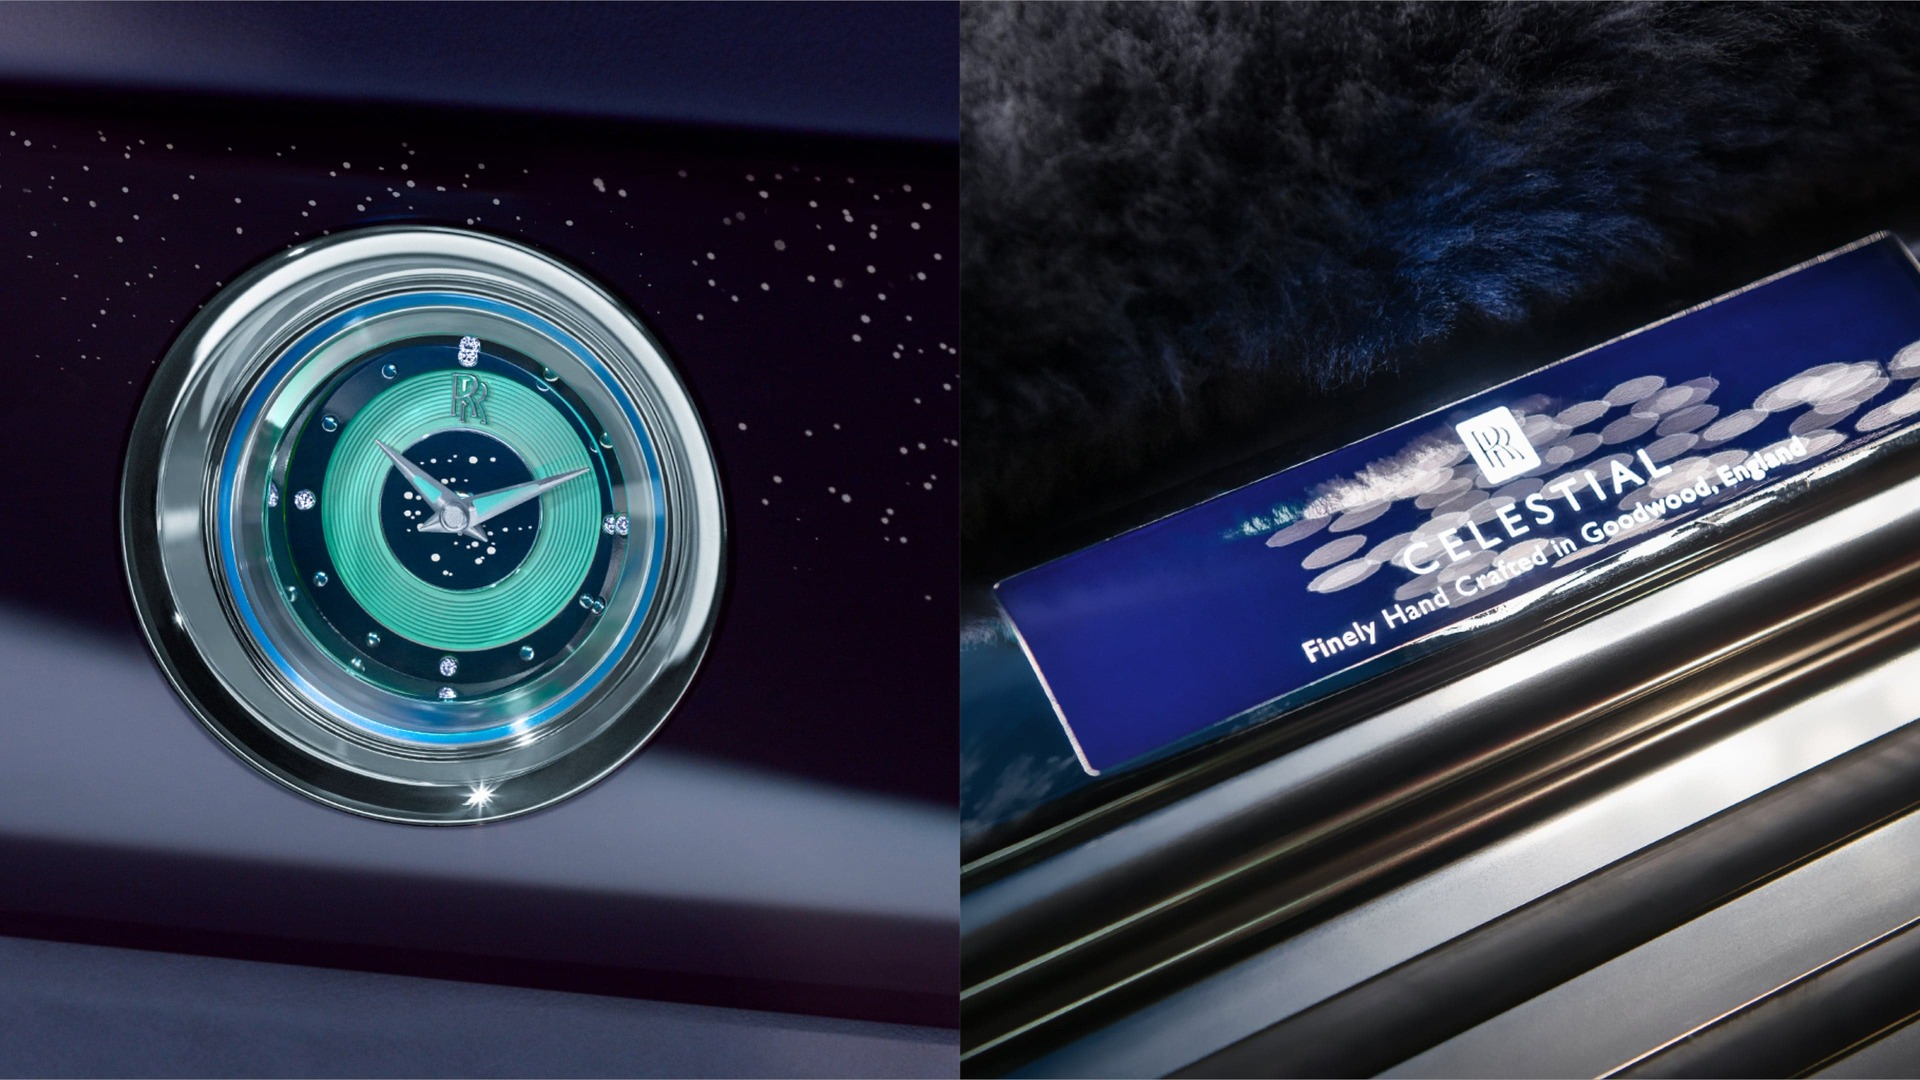 Detail shots of tread plate and clock from a Rolls-Royce Celestial Phantom